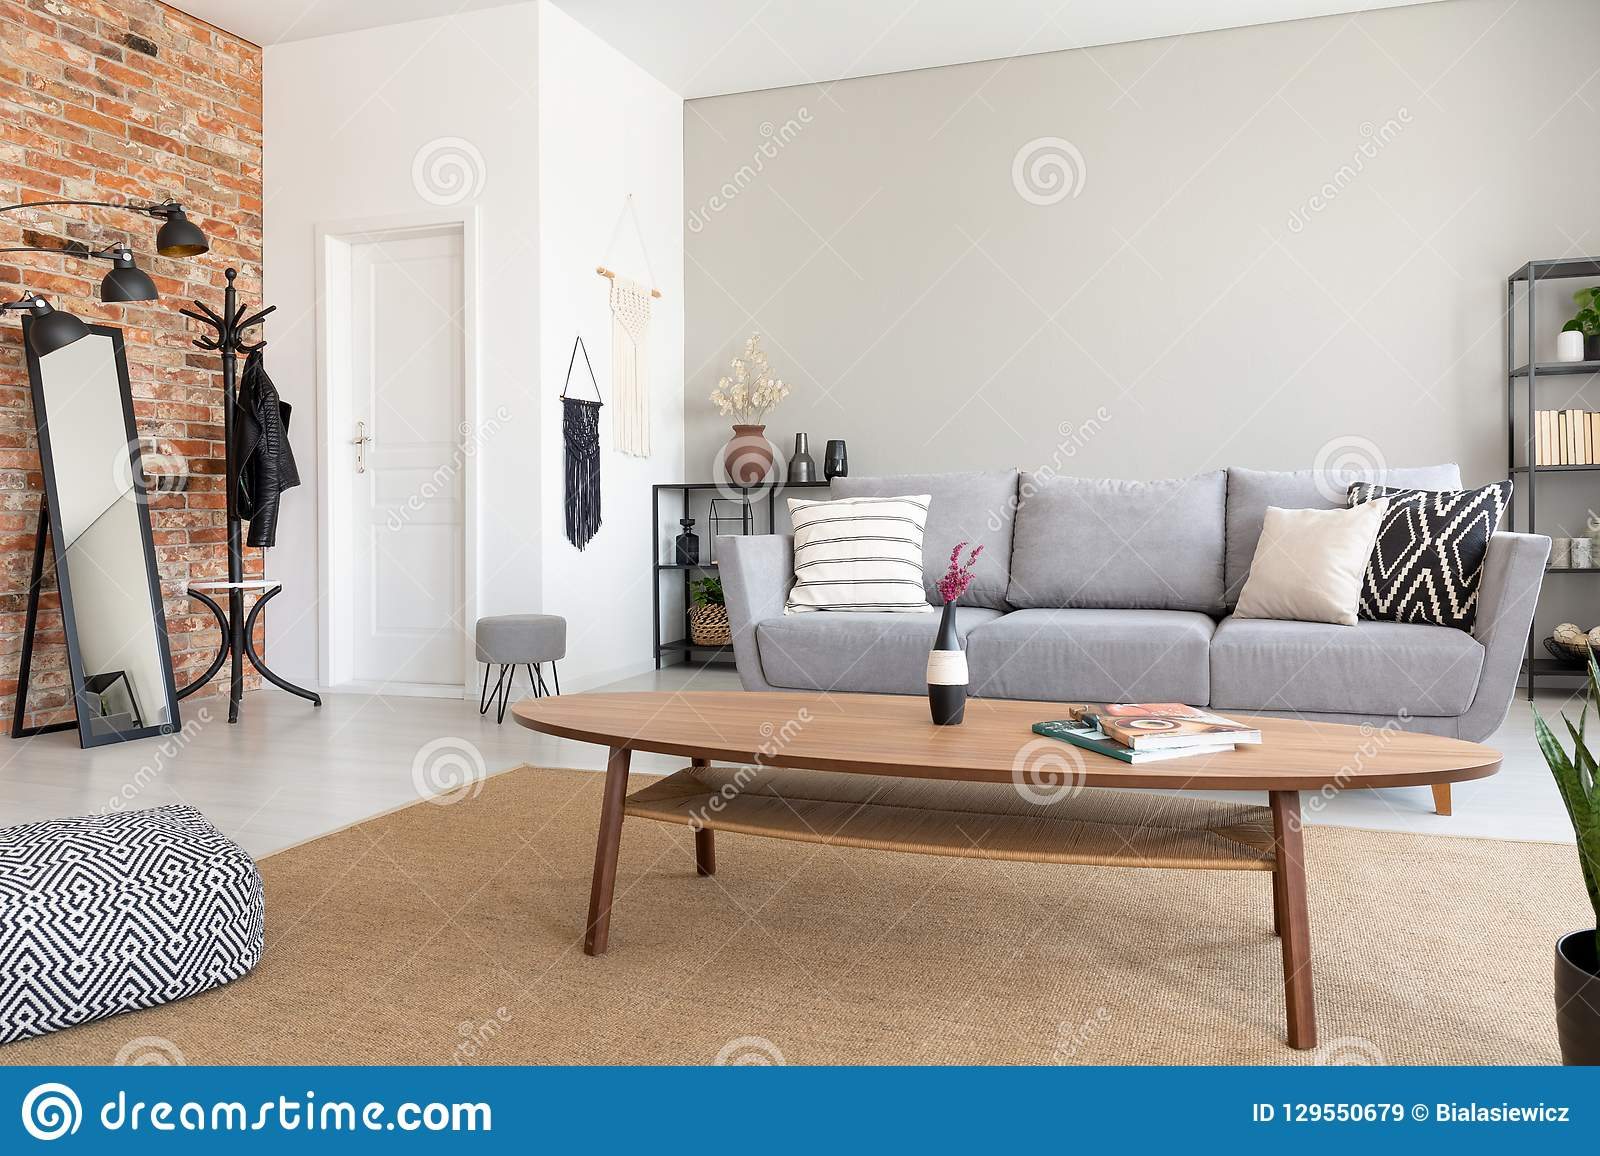 Round Wooden Table In The Middle Of Elegant Living Room With